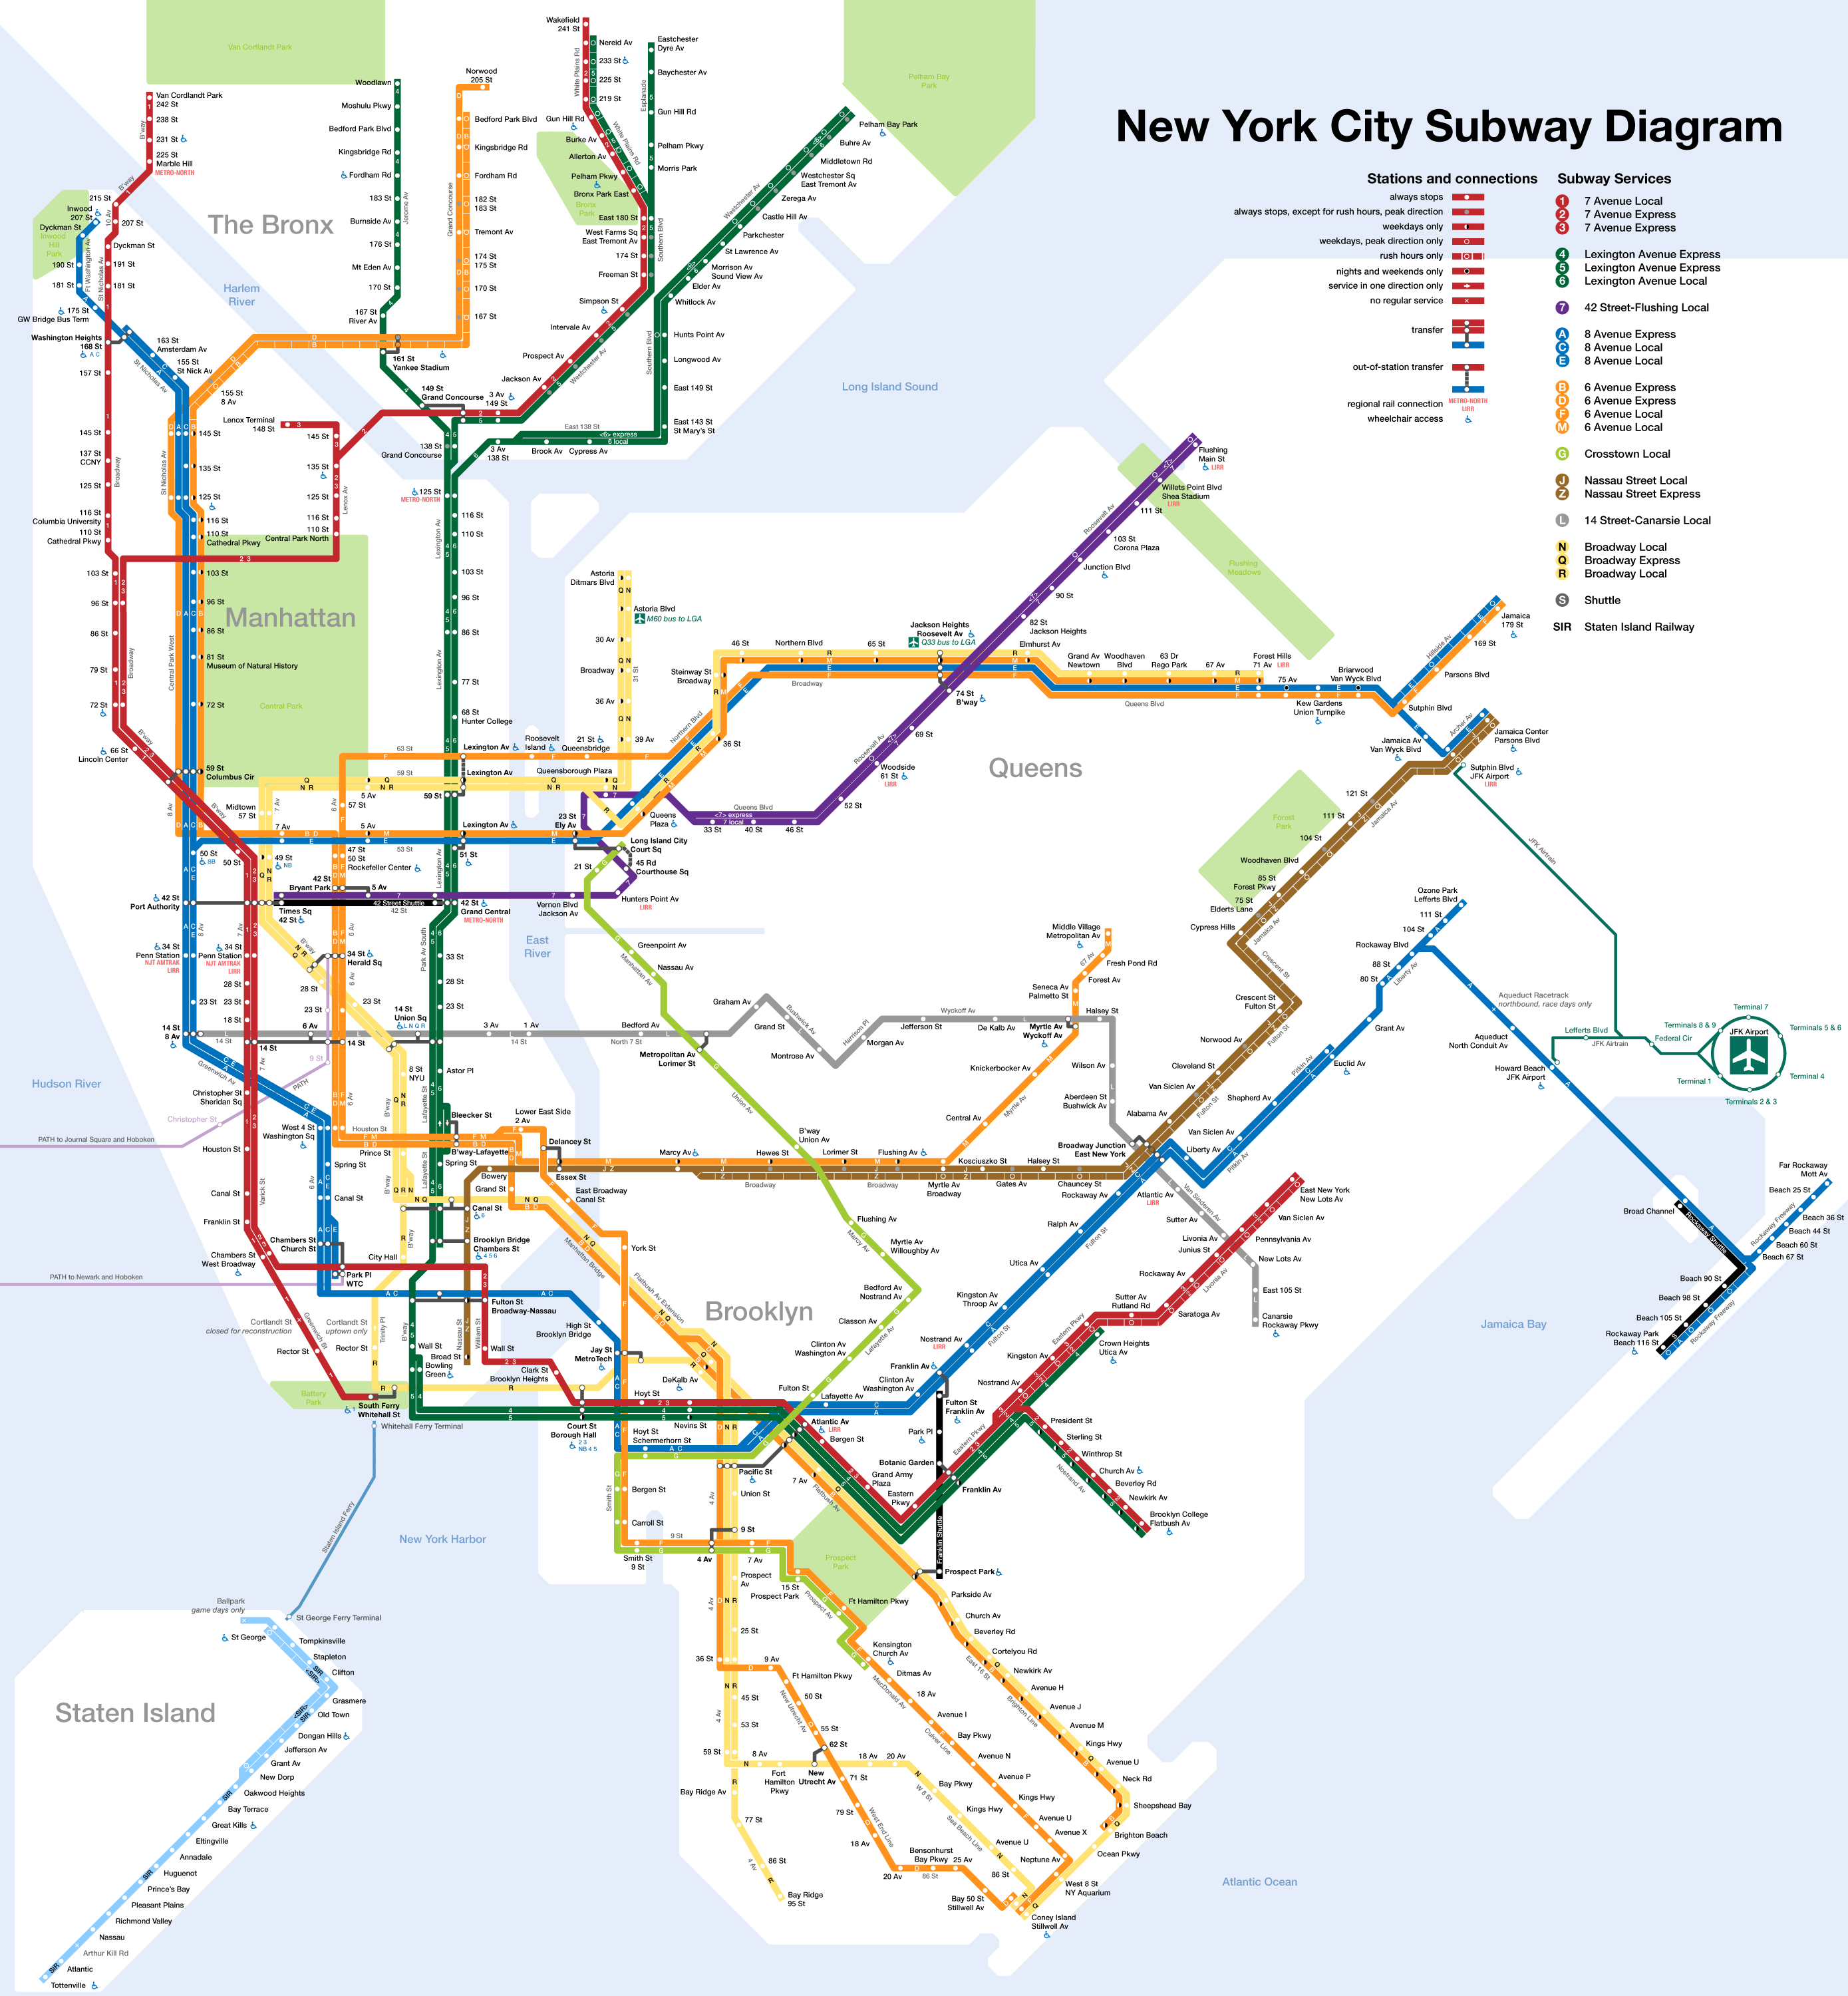 Mta Metro North Subway Map.This Is Better Than The Mta Subway Map New York City You Have My